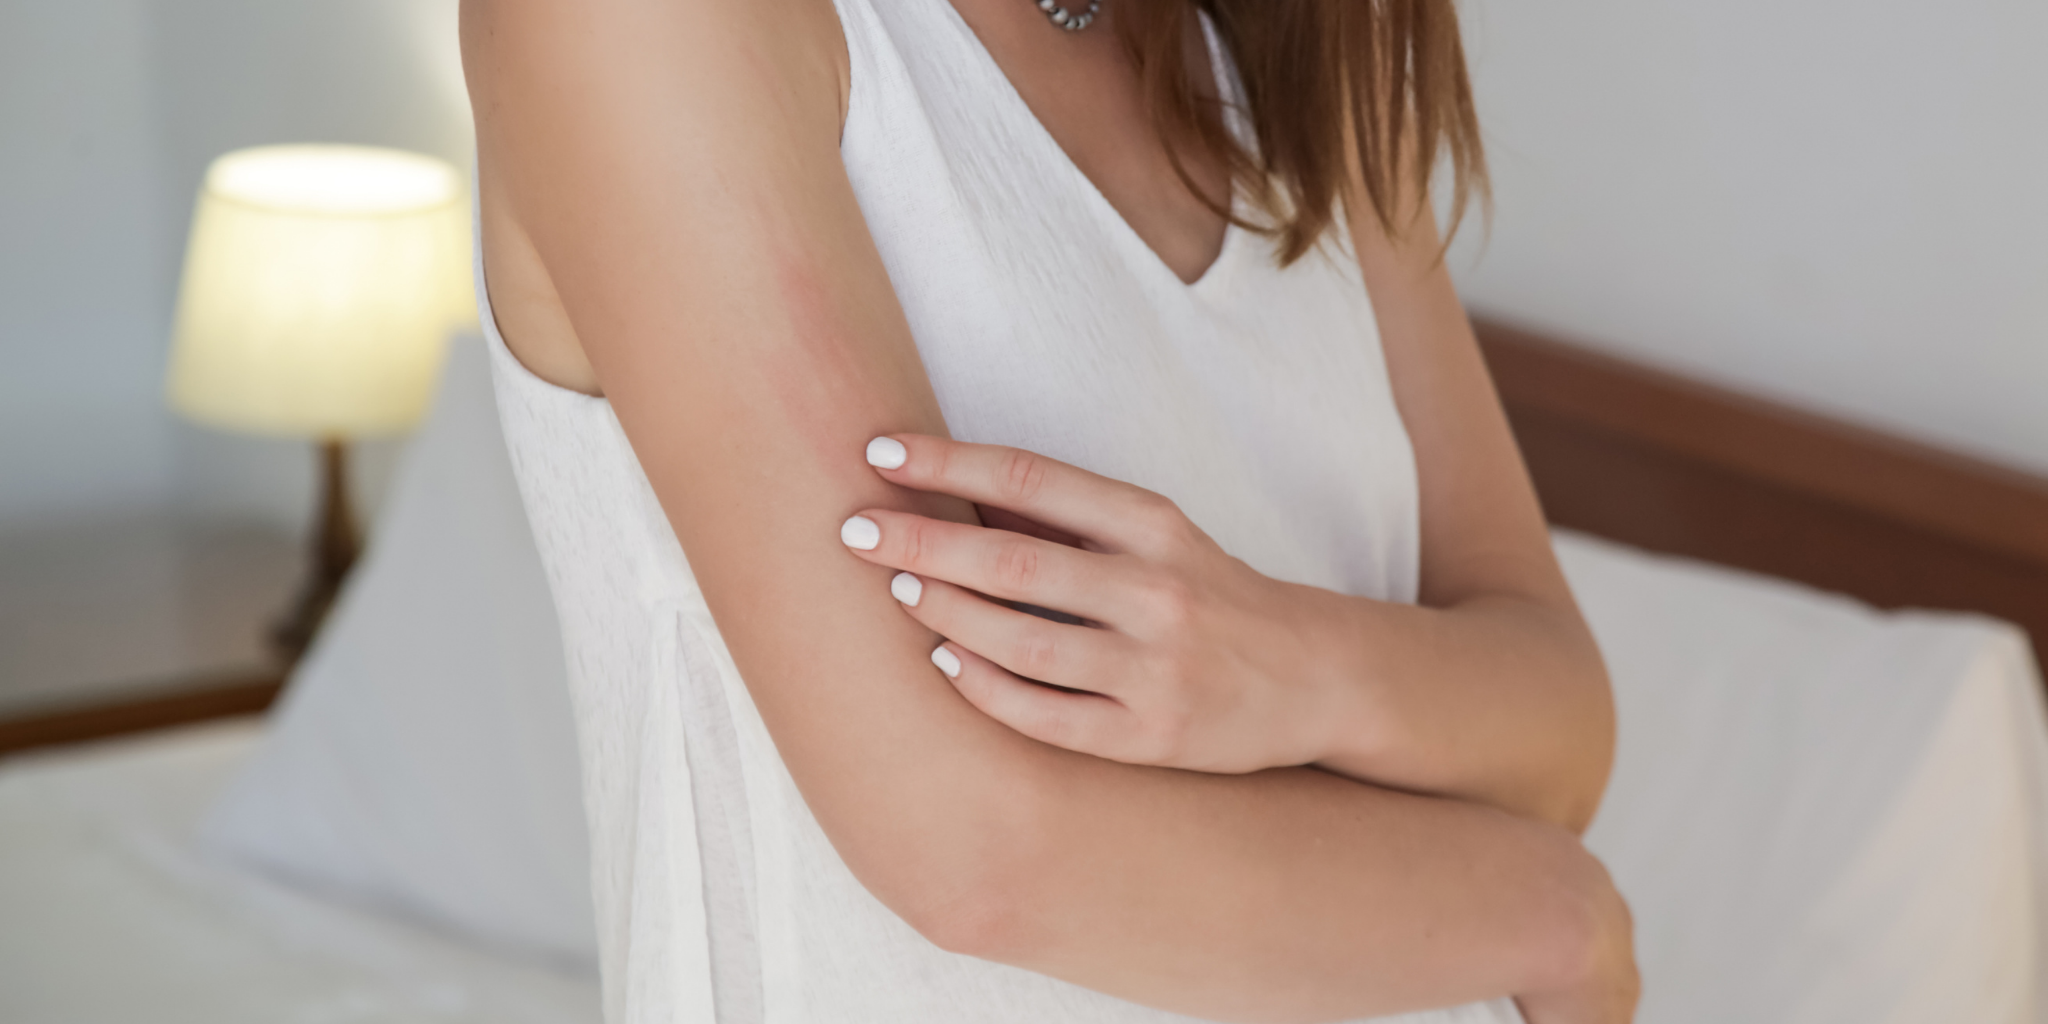 Itchy skin due to central heating: How to solve it?